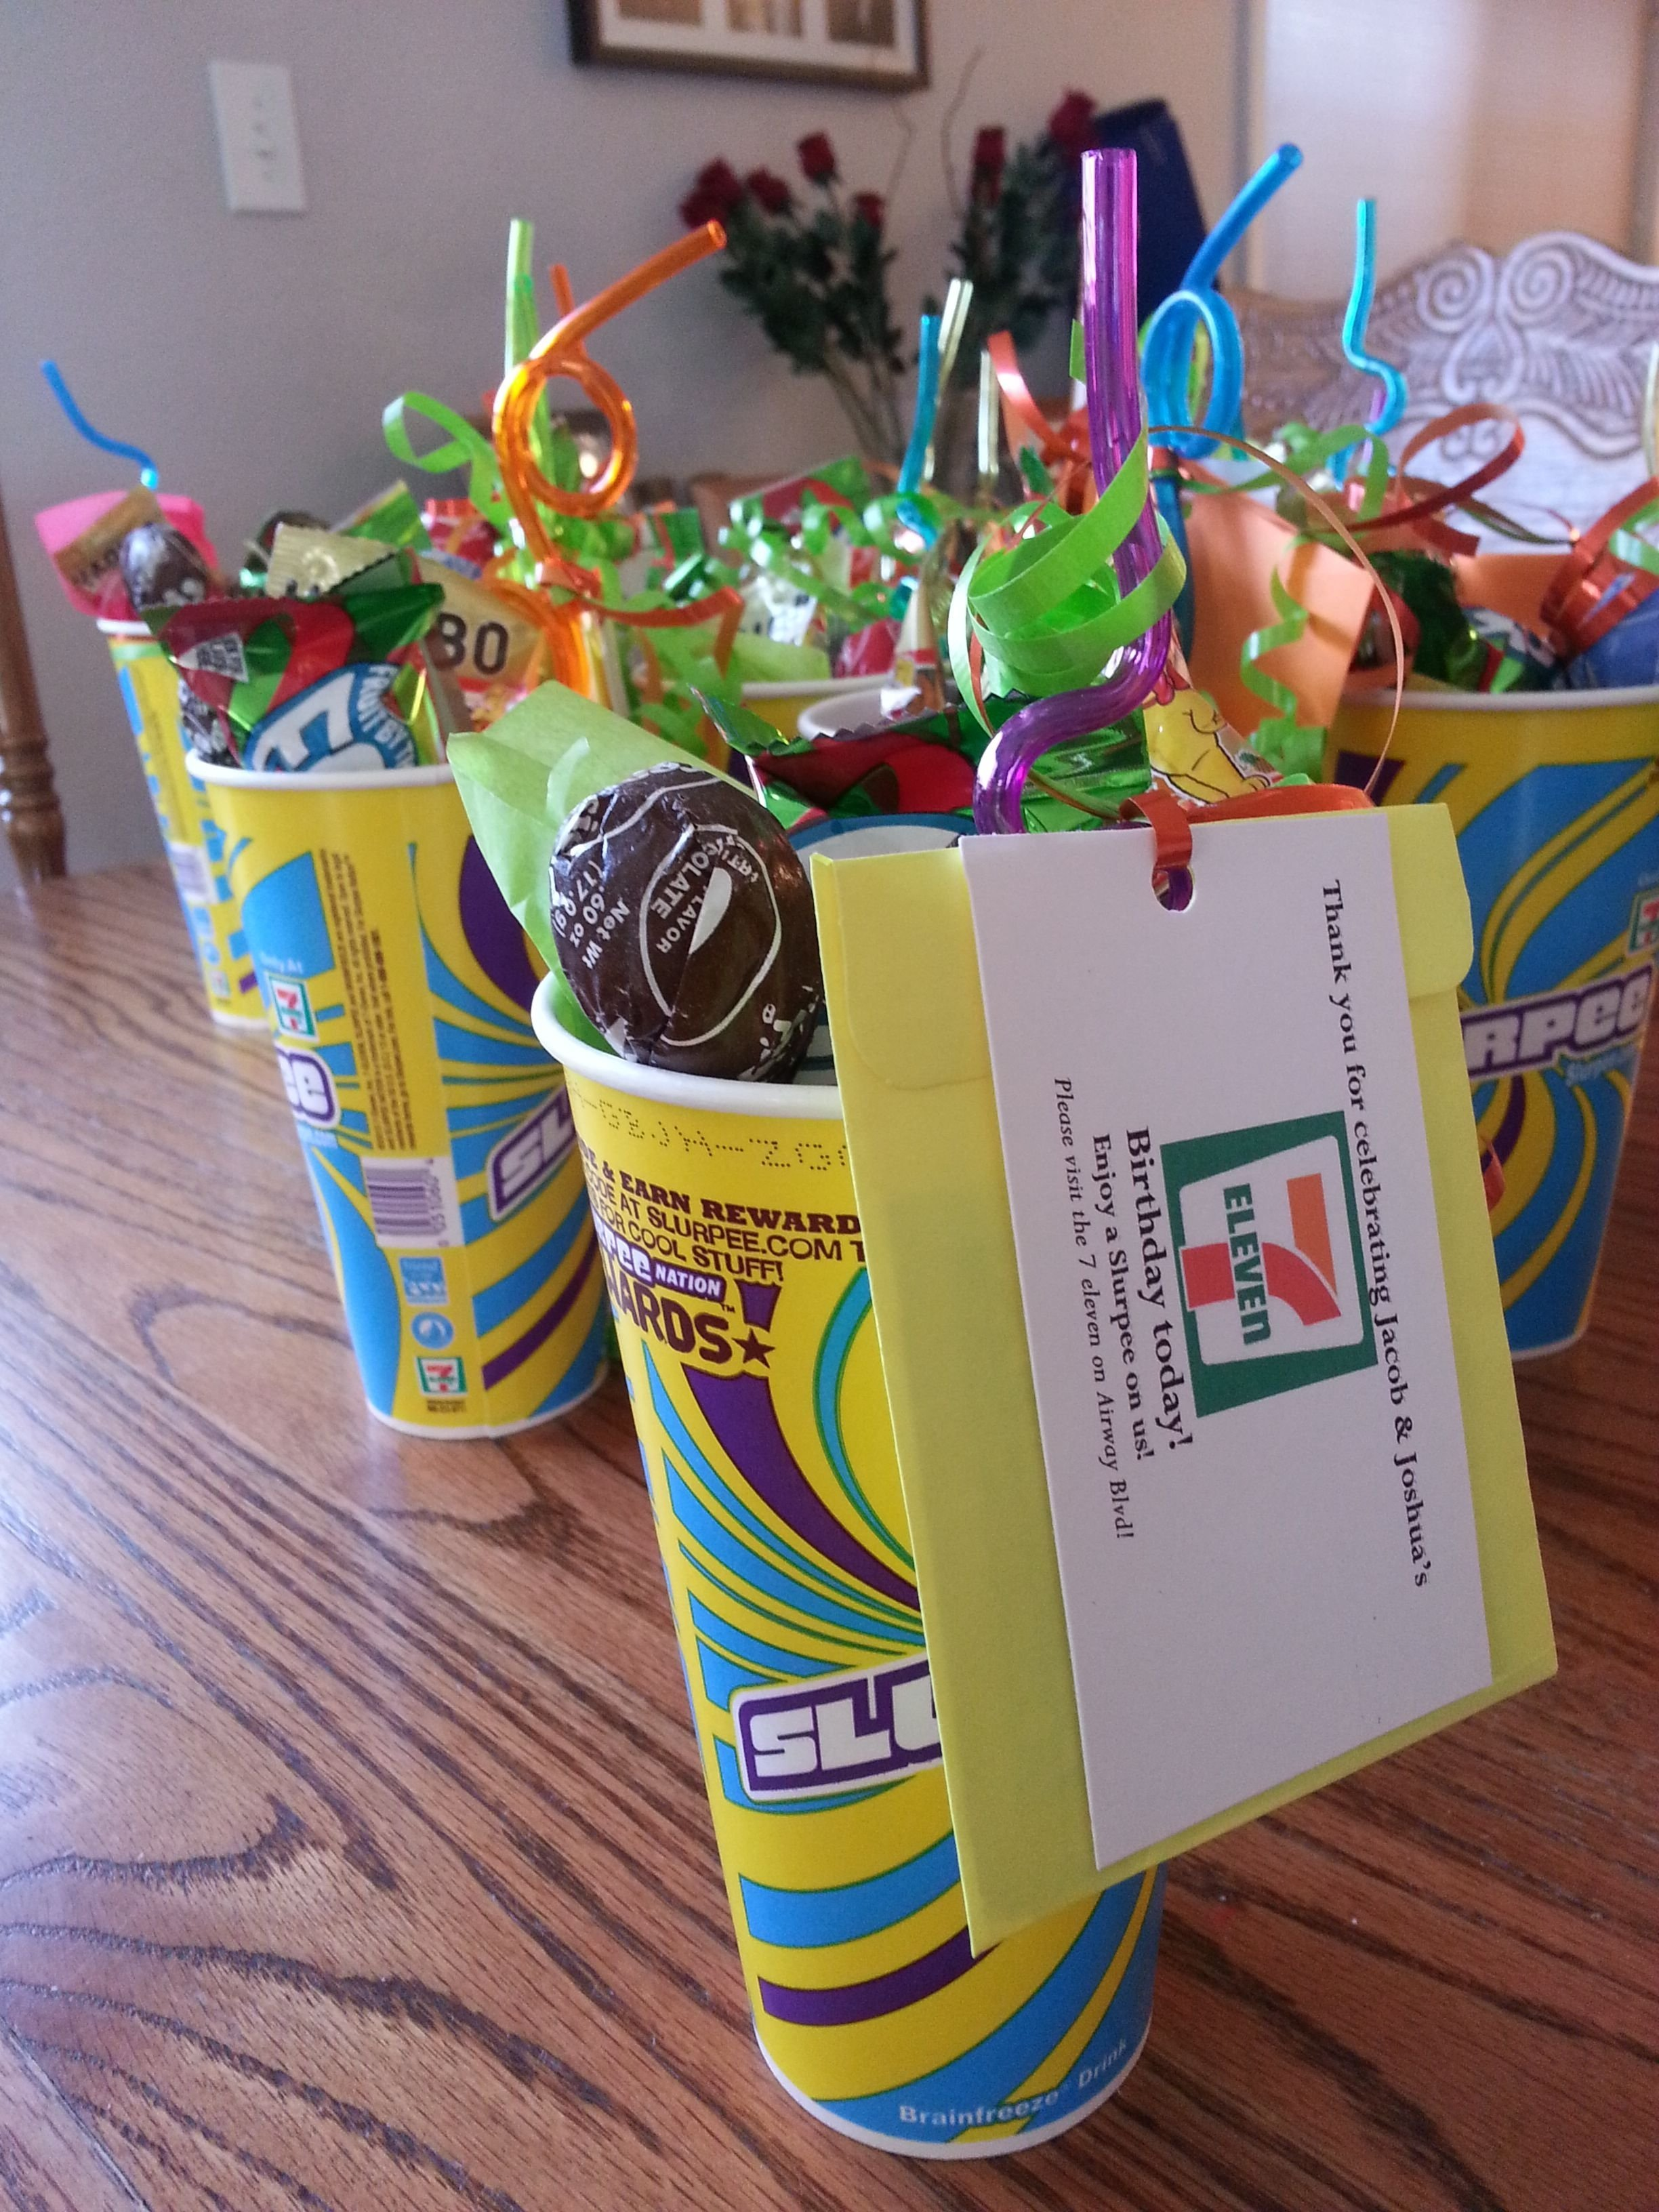 10 Perfect Birthday Ideas For 14 Year Olds my boys turned 7 and 11 years old and their birthdays are very close 8 2021